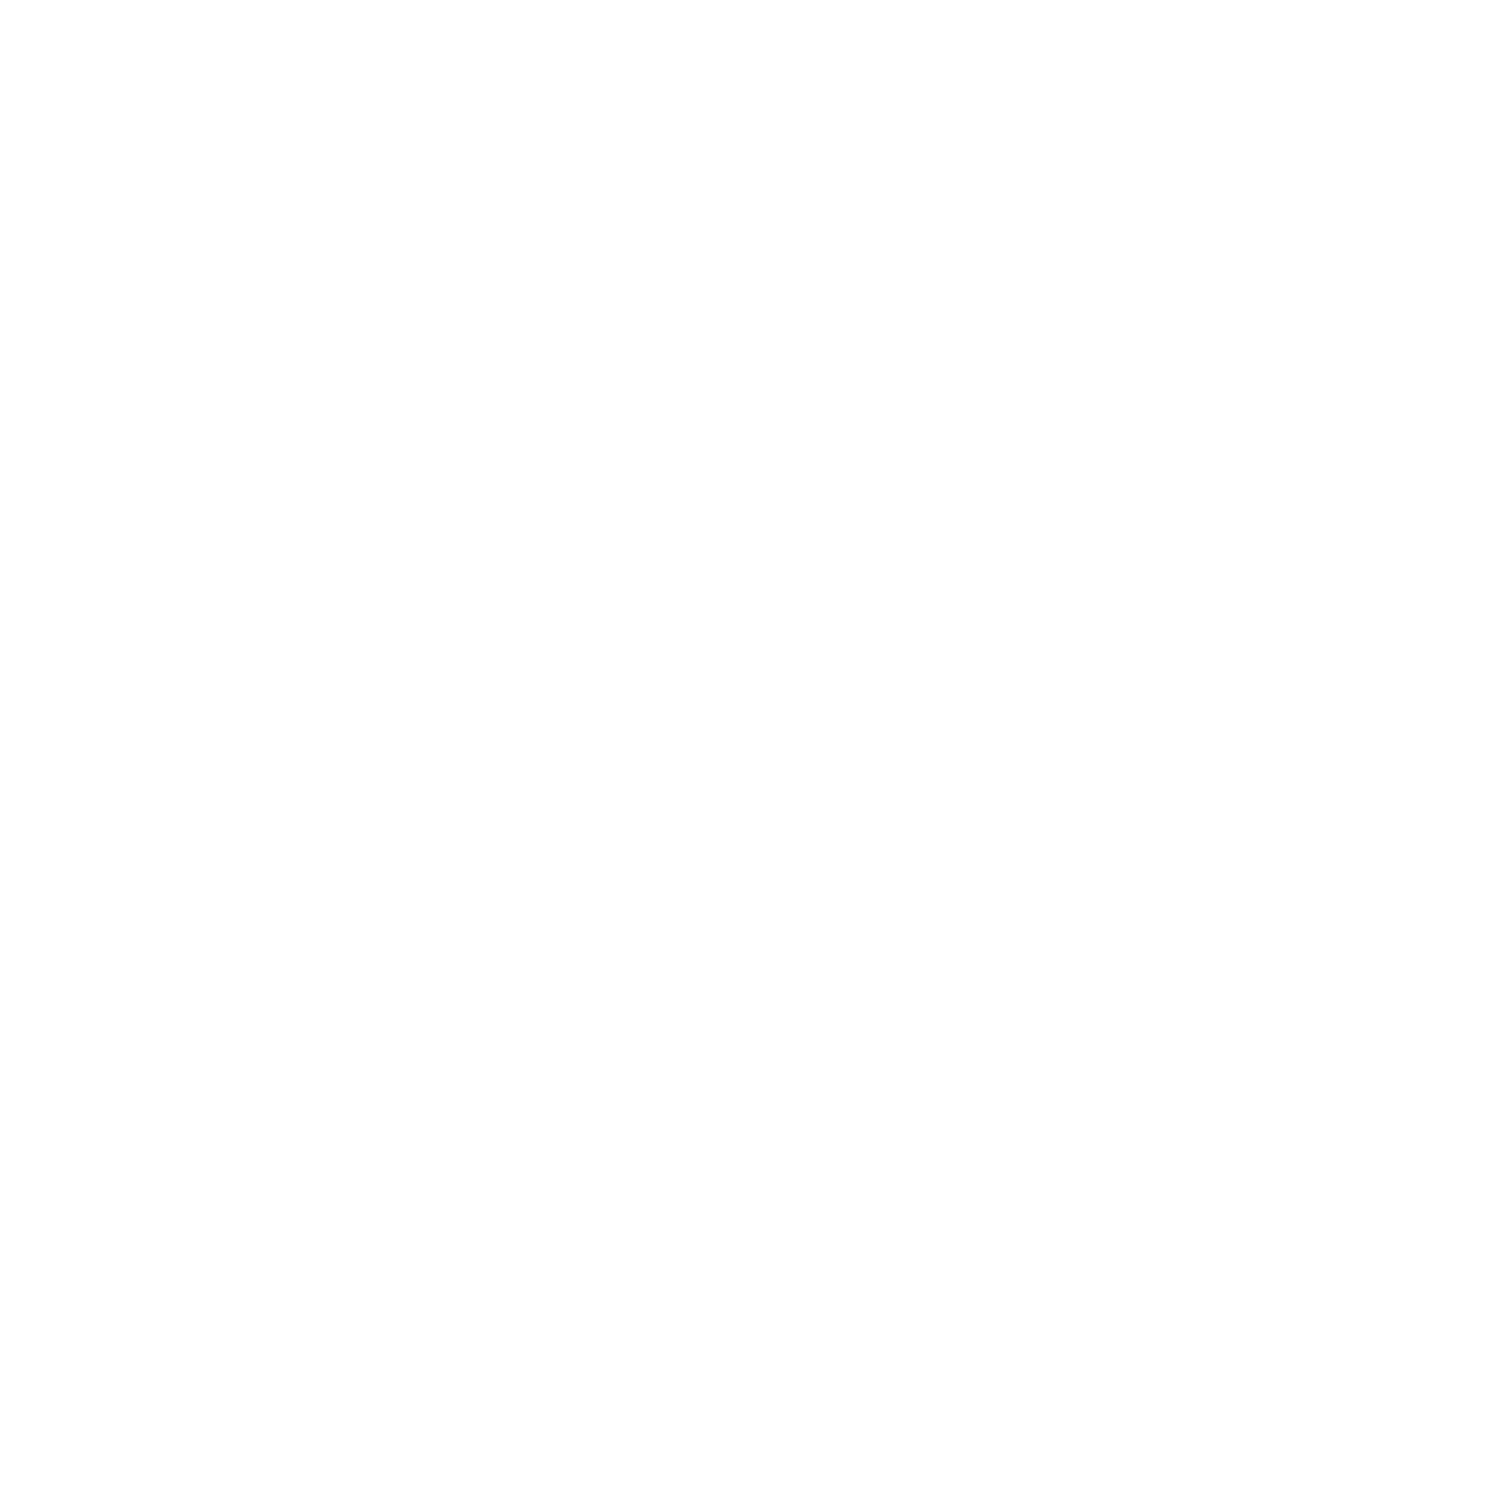 Heather Robertson Hair